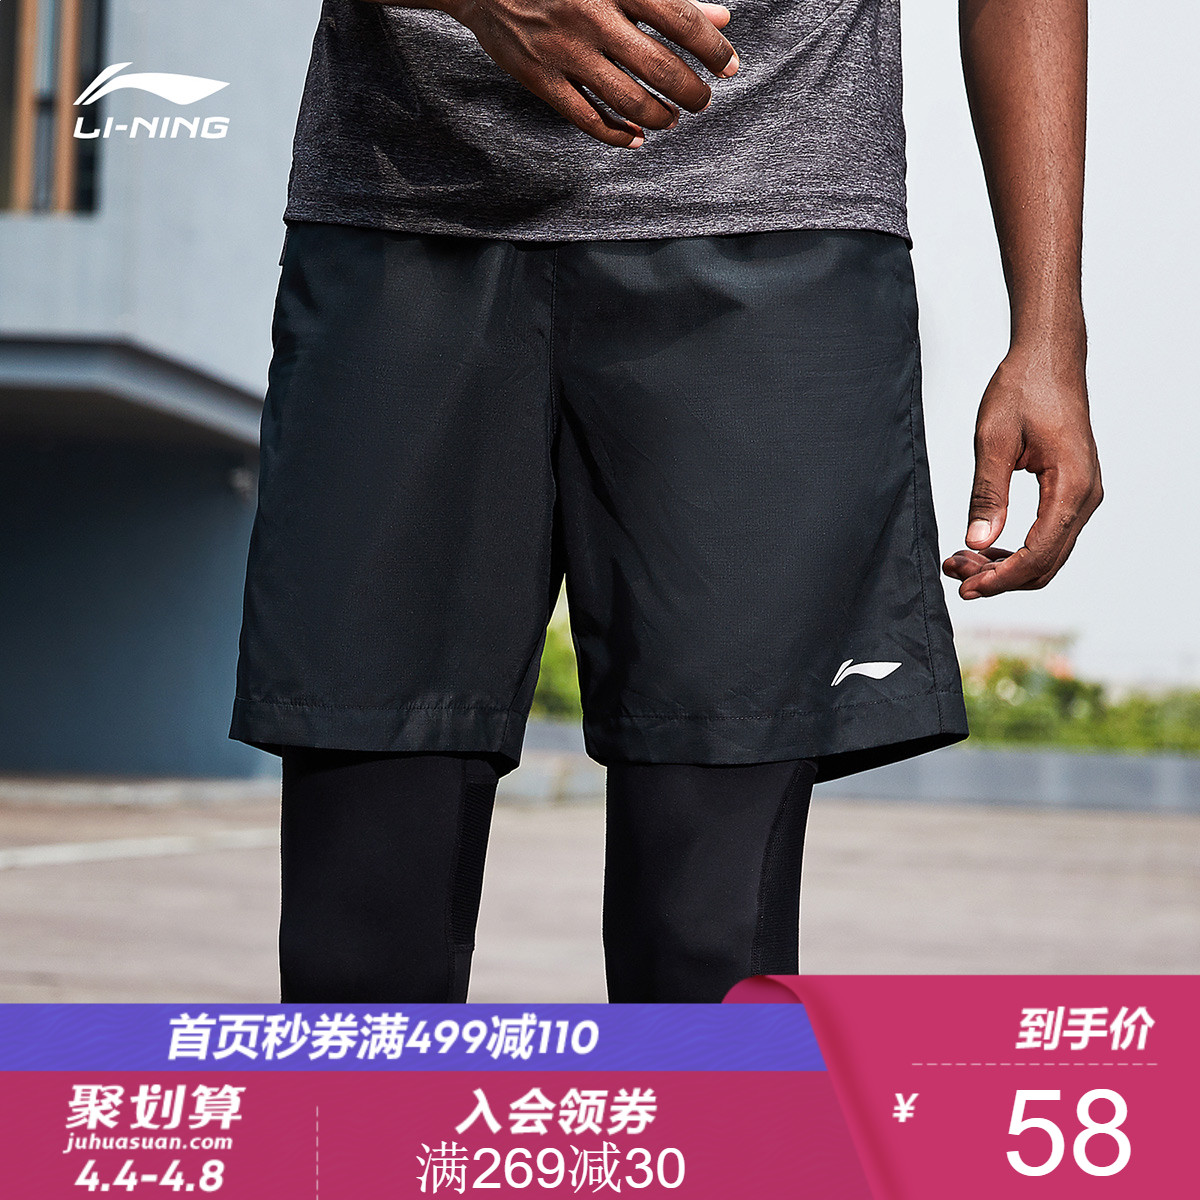 Li Ning Sports Shorts Men's New Training Series Summer Woven Thin Running Five-minute Sports Pants